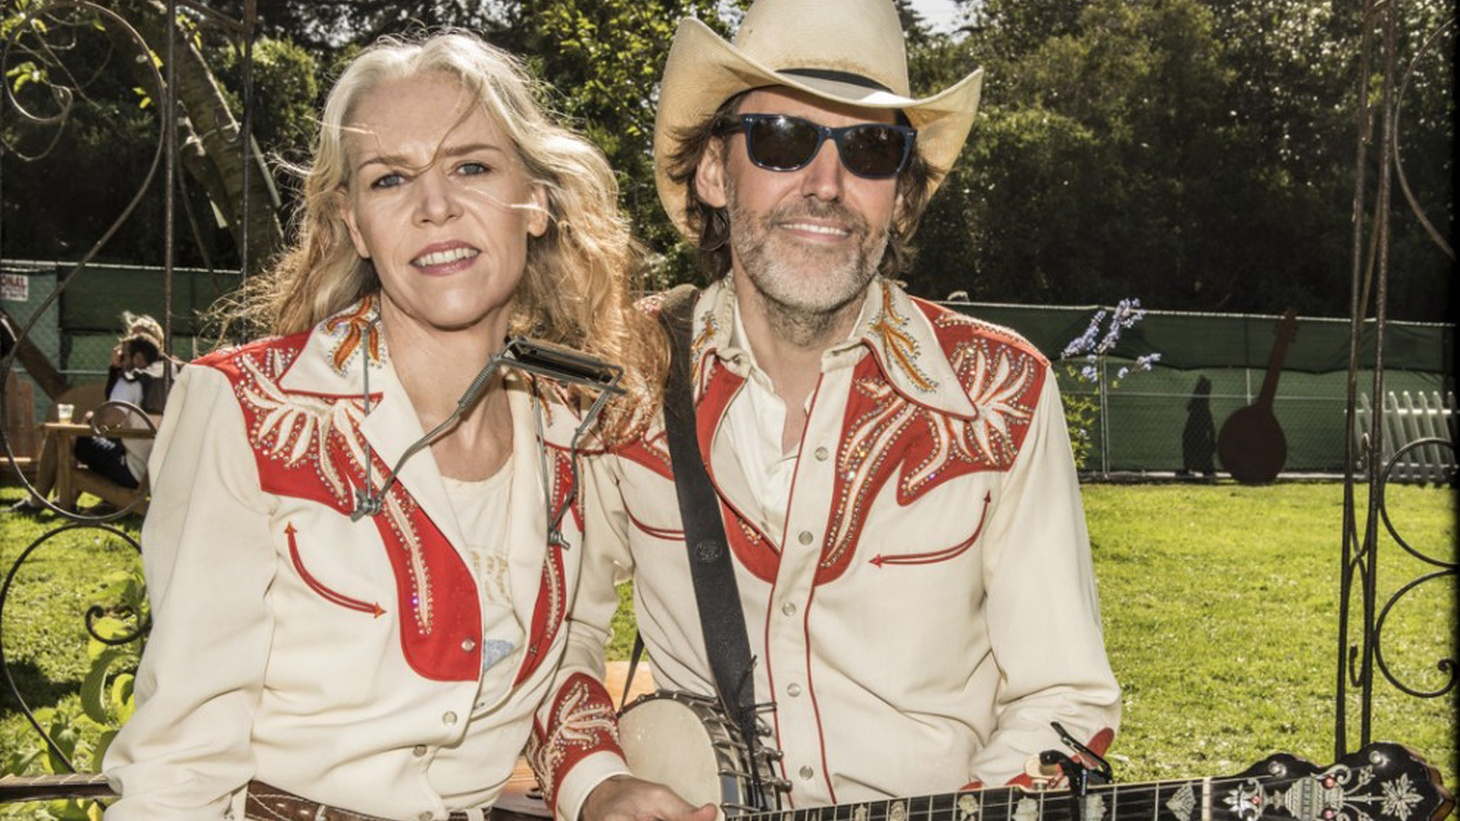 Gillian Welch and Dave Rawlings have been making beautiful music together for years. As the Dave Rawlings Machine the duo have written and recorded their new album on analog tape in Nashville.